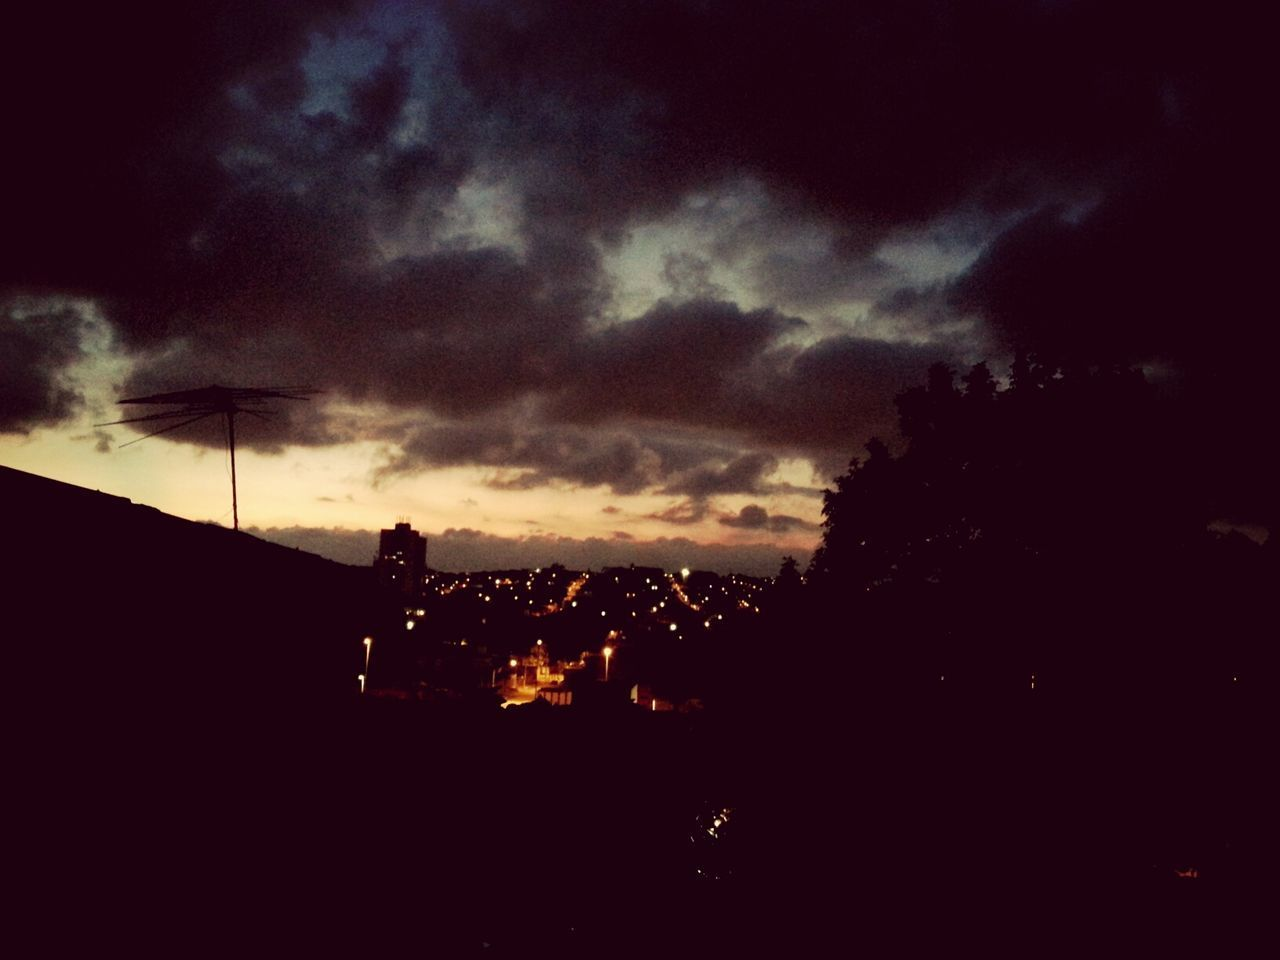 building exterior, sky, architecture, built structure, cloud - sky, silhouette, illuminated, city, cloudy, night, storm cloud, dusk, weather, residential structure, dramatic sky, dark, residential building, sunset, overcast, cloud